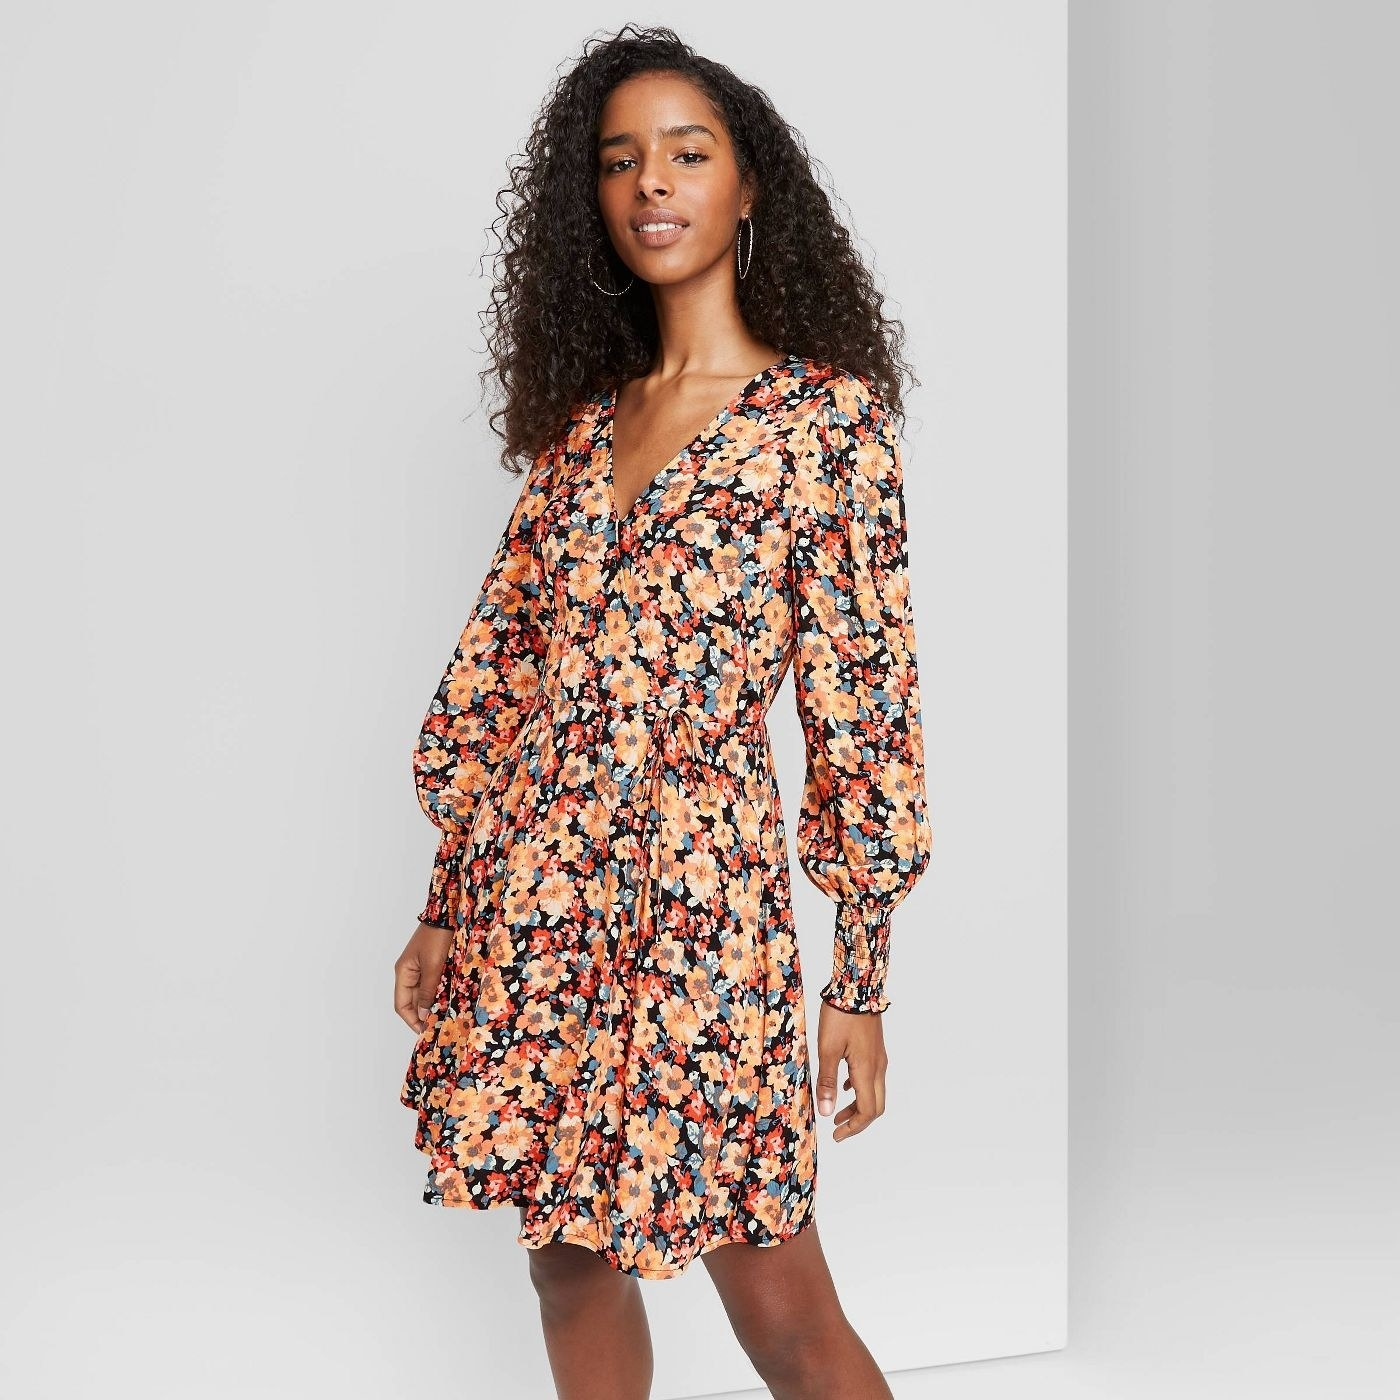 Model wearing floral mini dress with orange, red, and light blue flowers